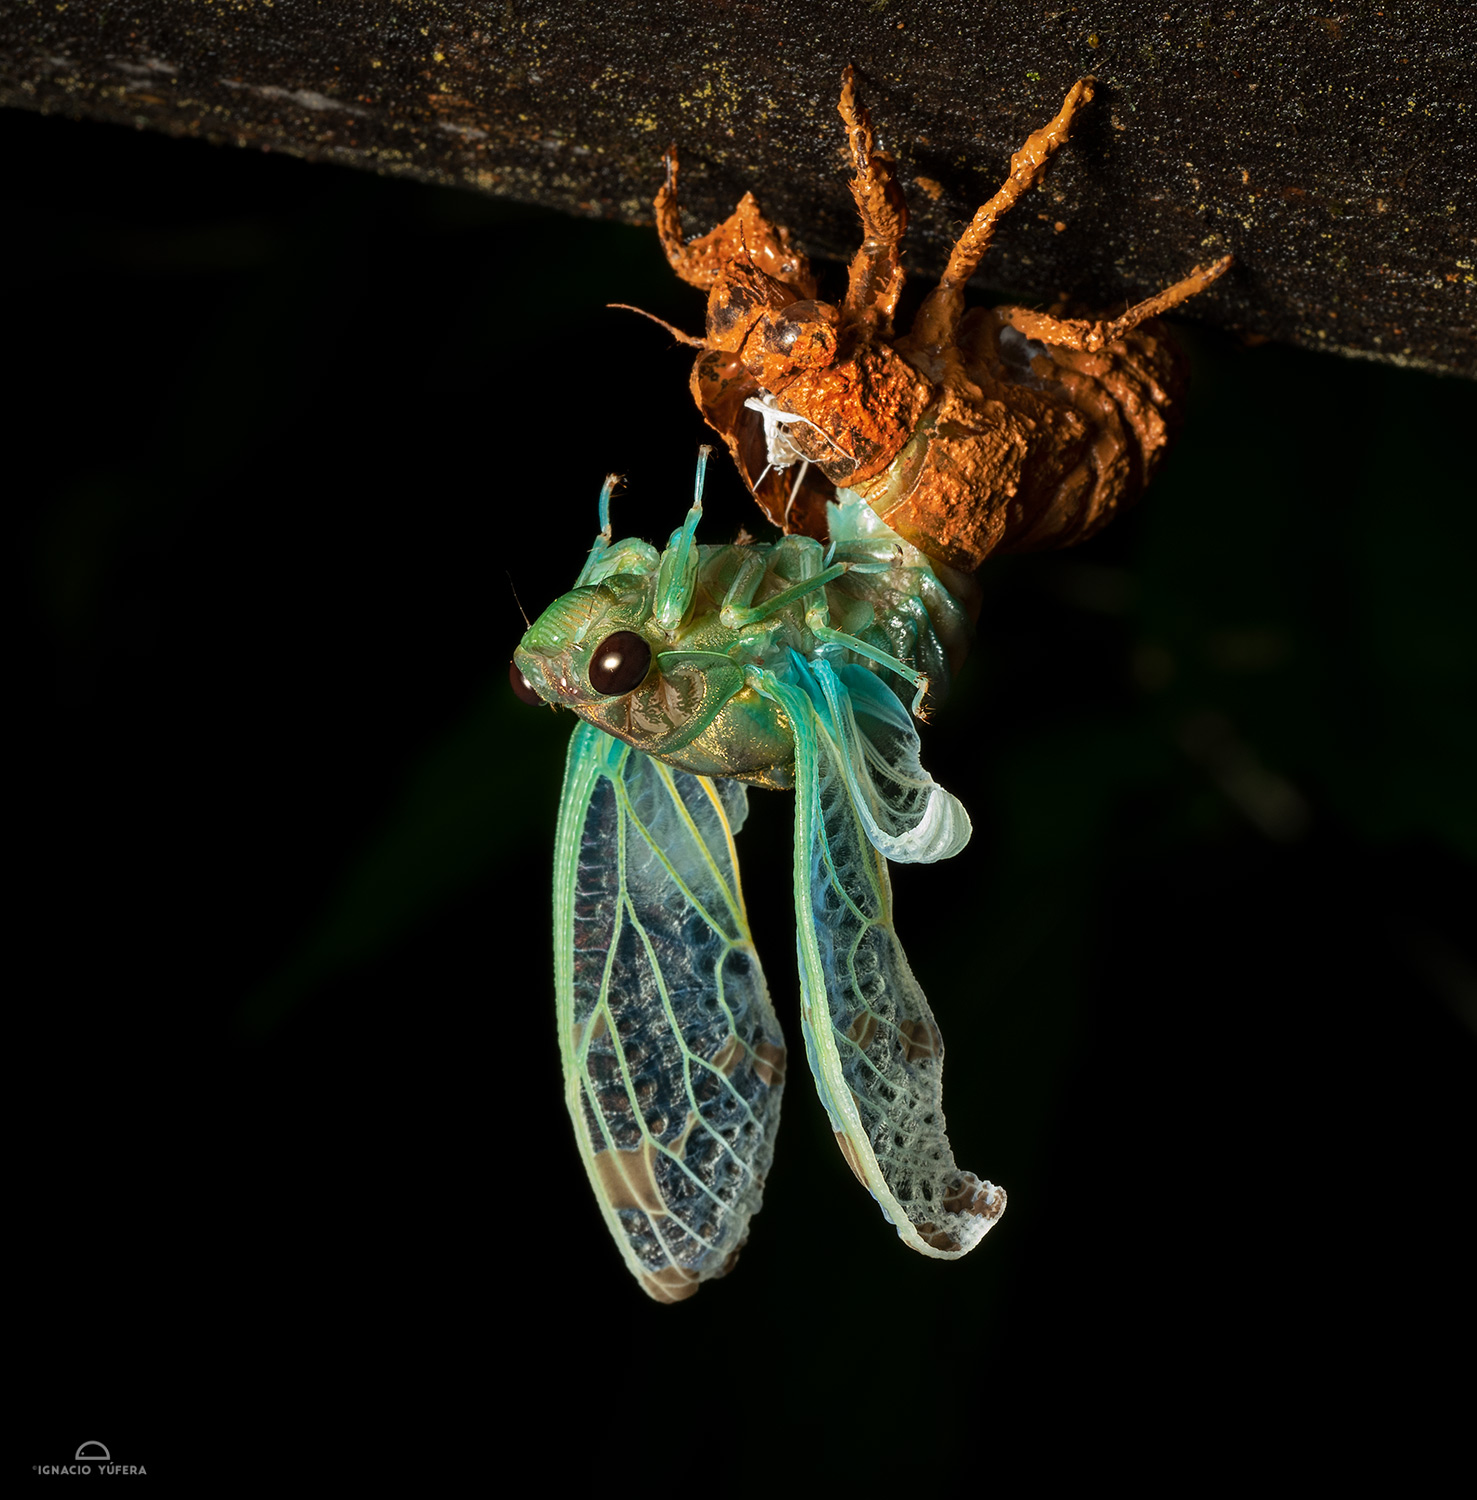 Cicada emerging from nymph exoskeleton, Nusagandi, Panama